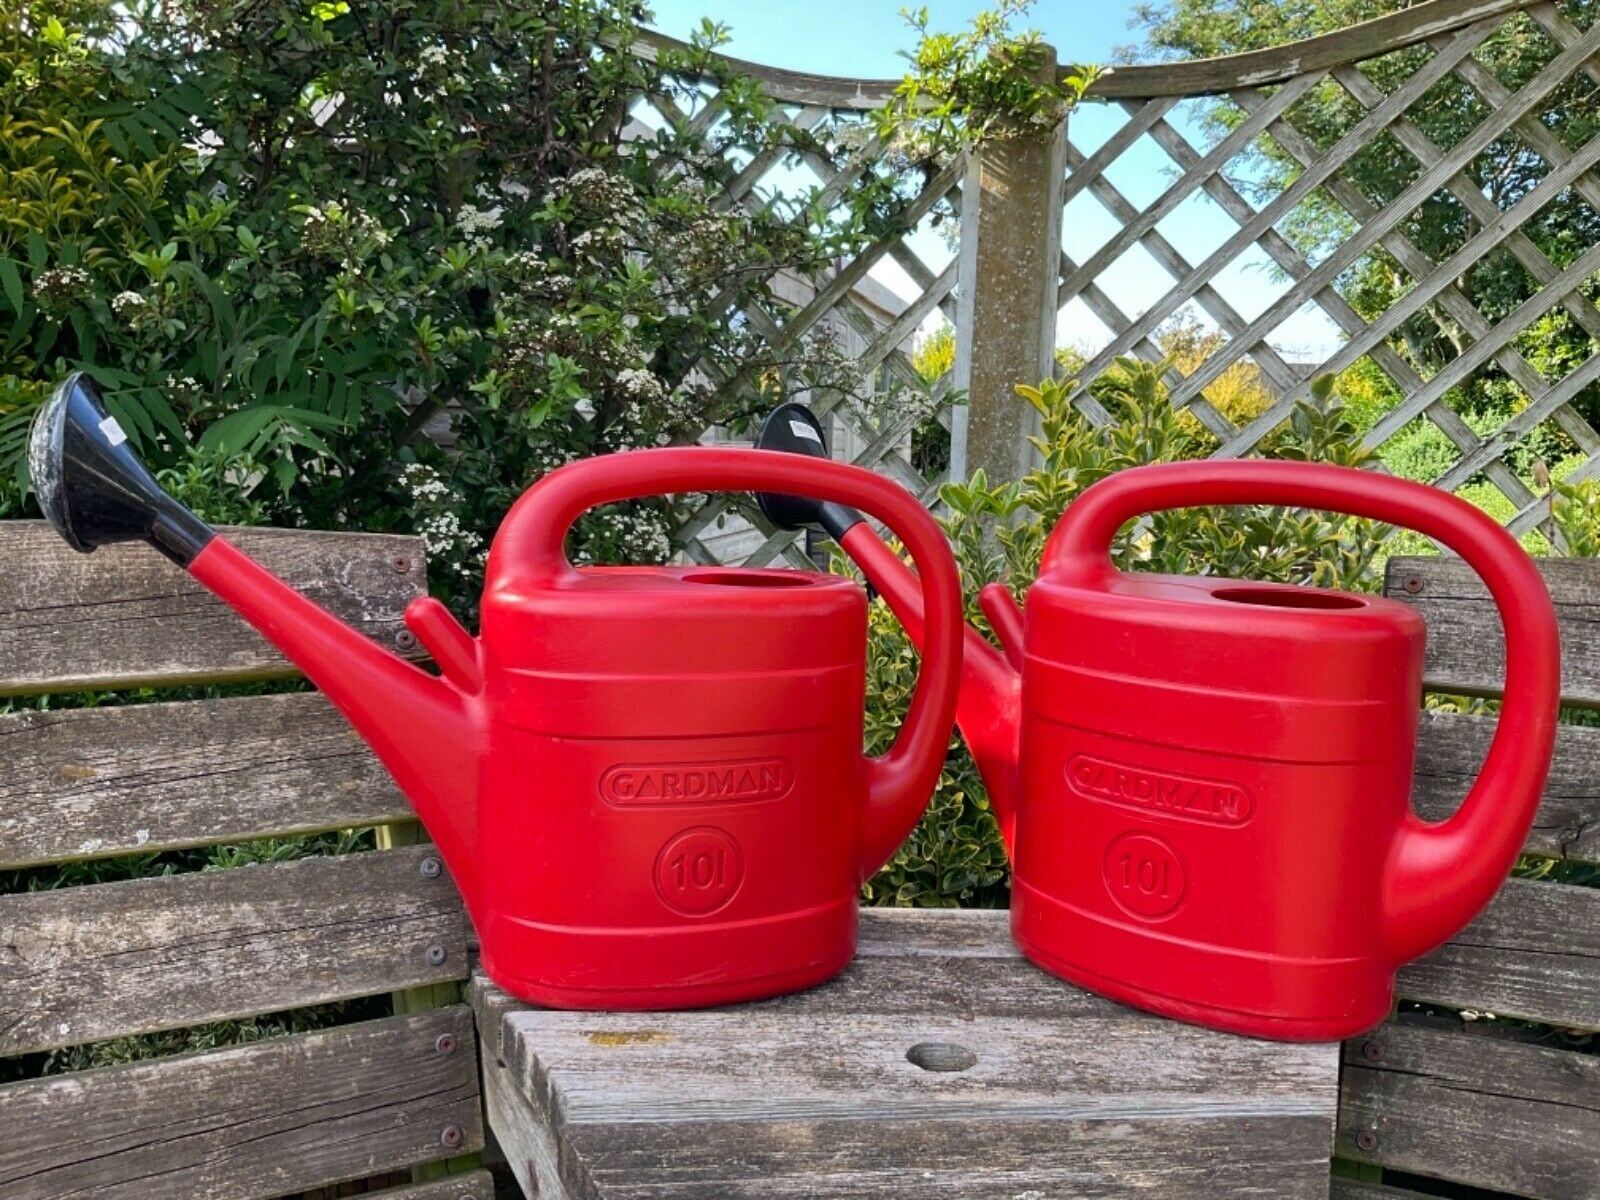 Gardman Red Watering Can Cans x 2 10 Litre + Rose on Each